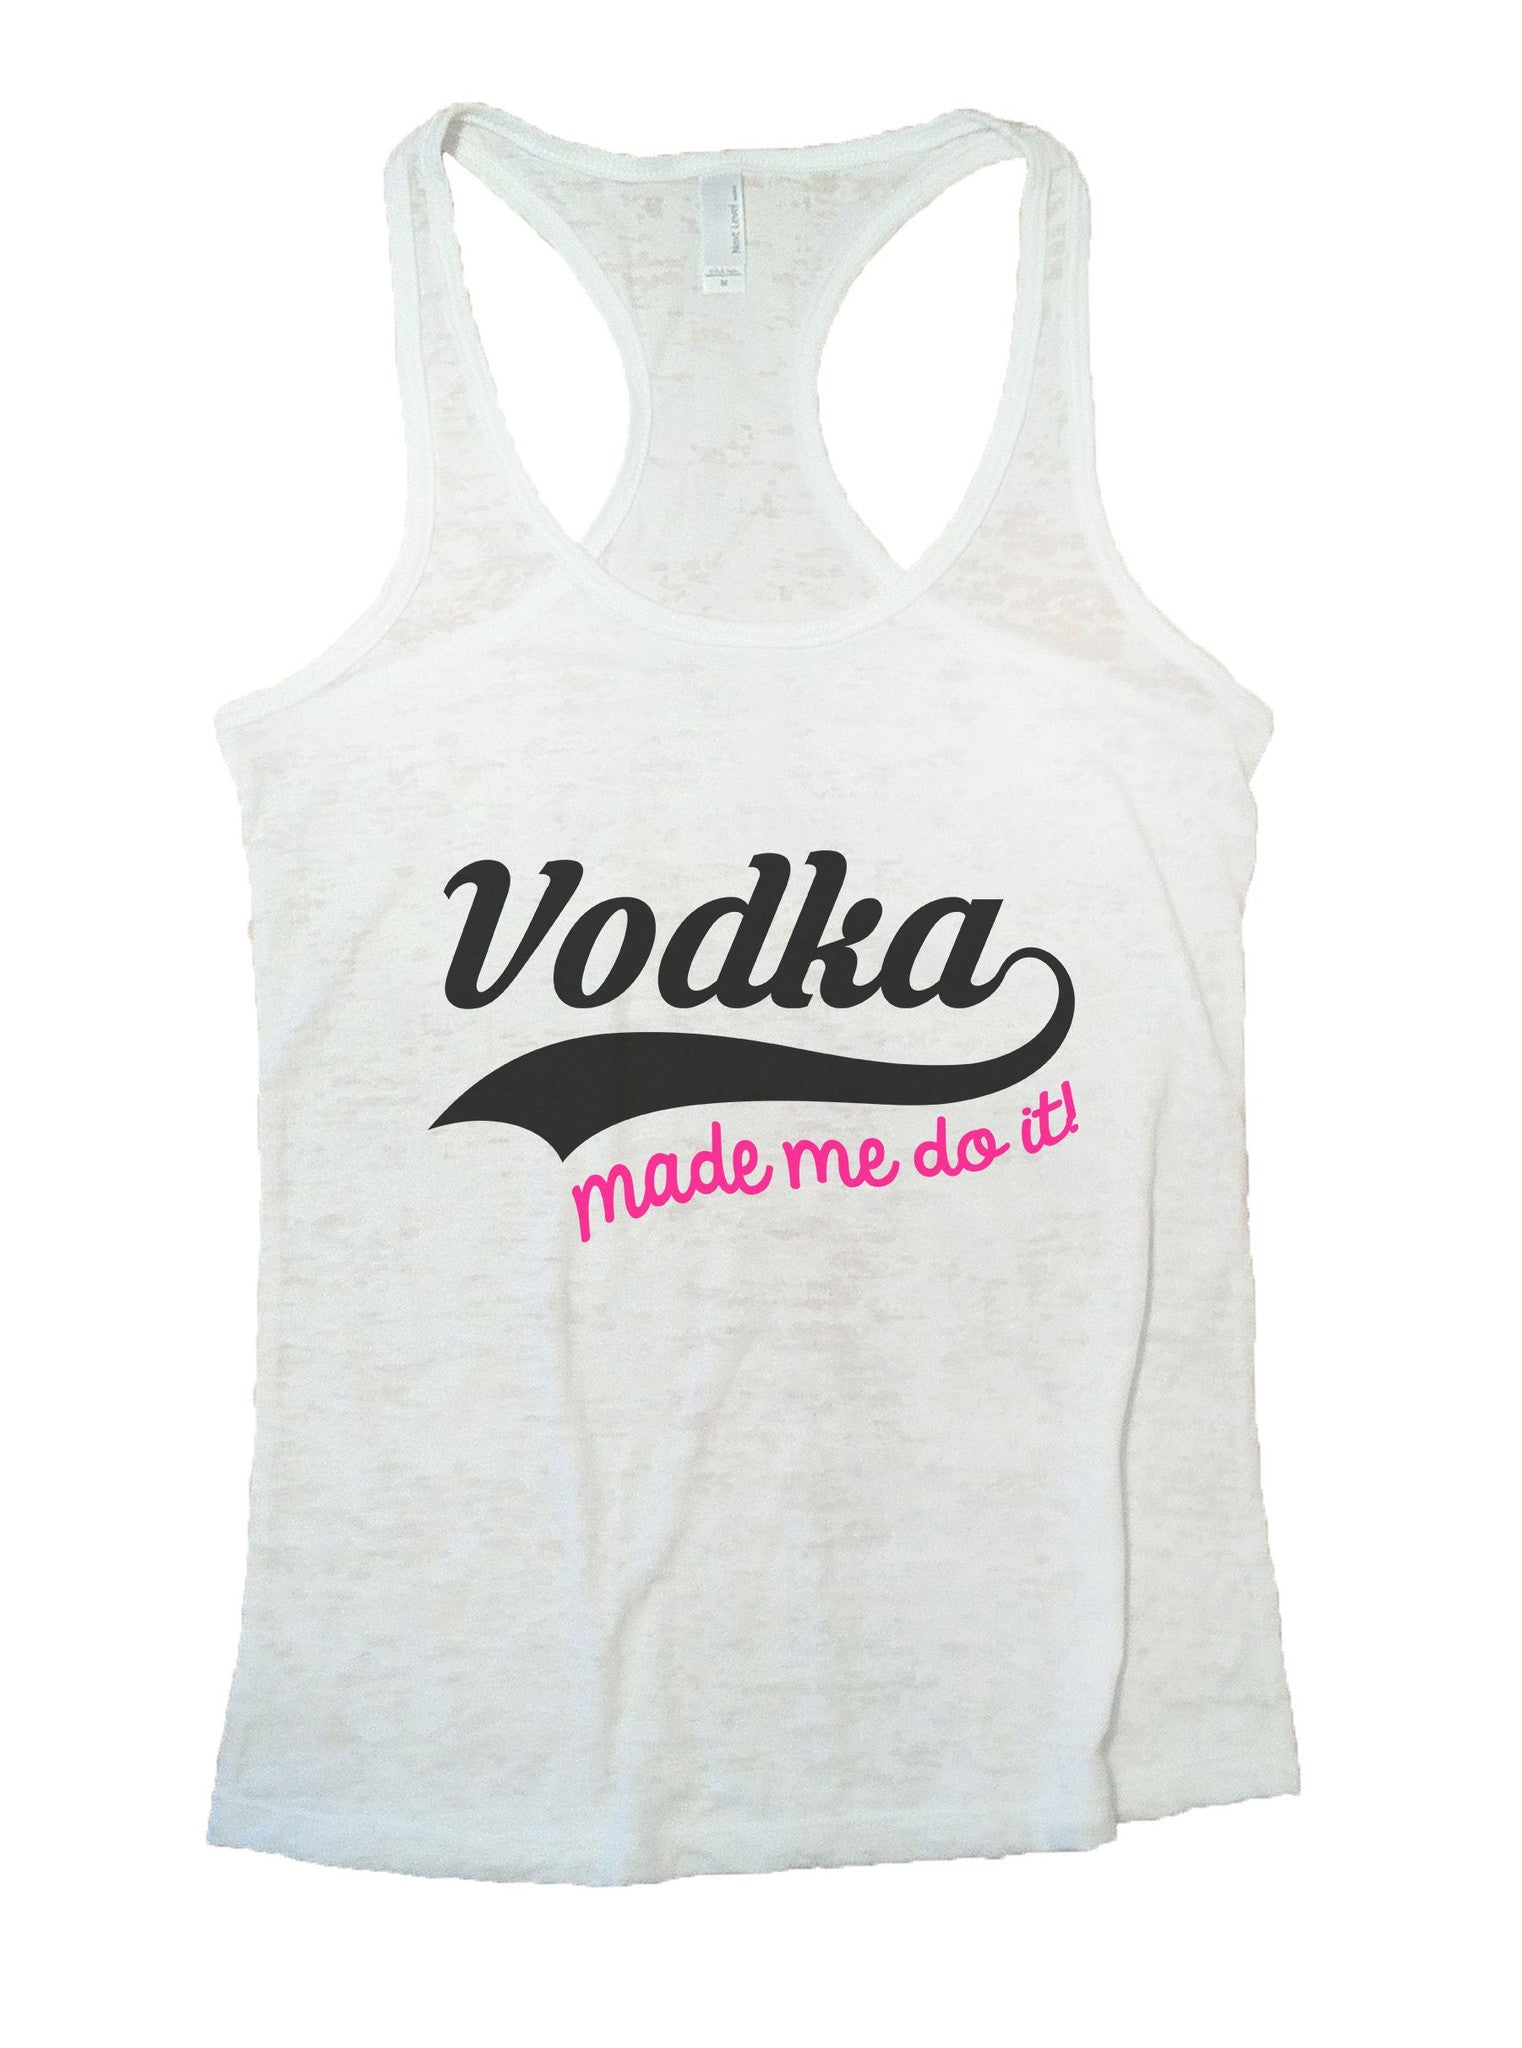 Vodka Made Me Do It! Burnout Tank Top By BurnoutTankTops.com - 1083 - Funny Shirts Tank Tops Burnouts and Triblends  - 6